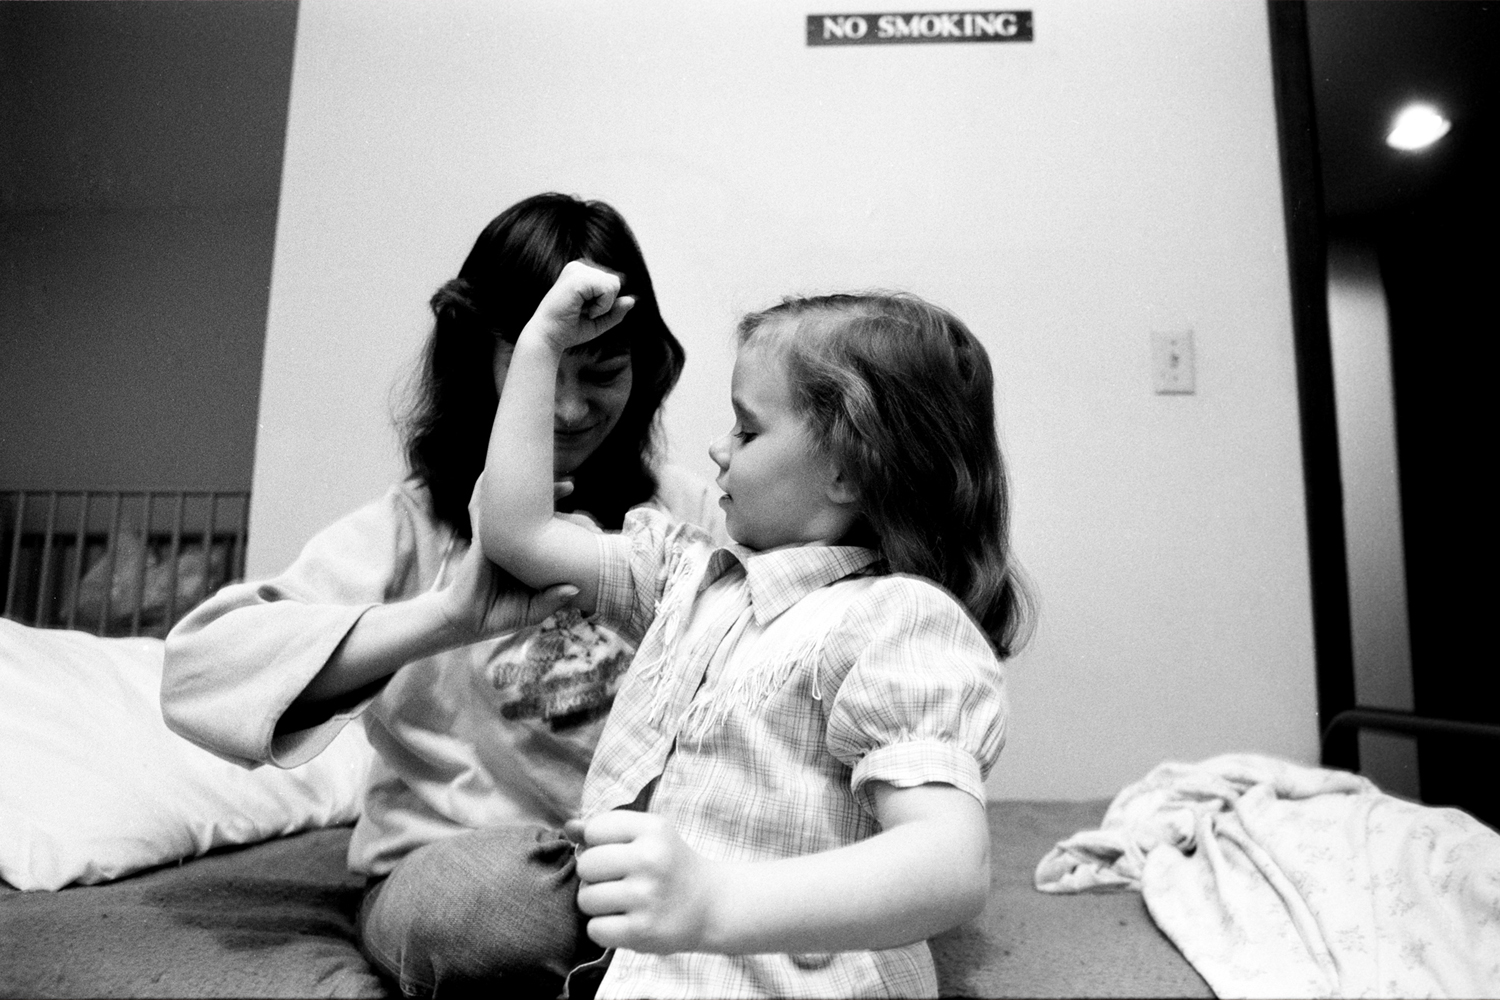 Mary's daughter shows her the strong woman she will grow up to be. Minneapolis, 1986.